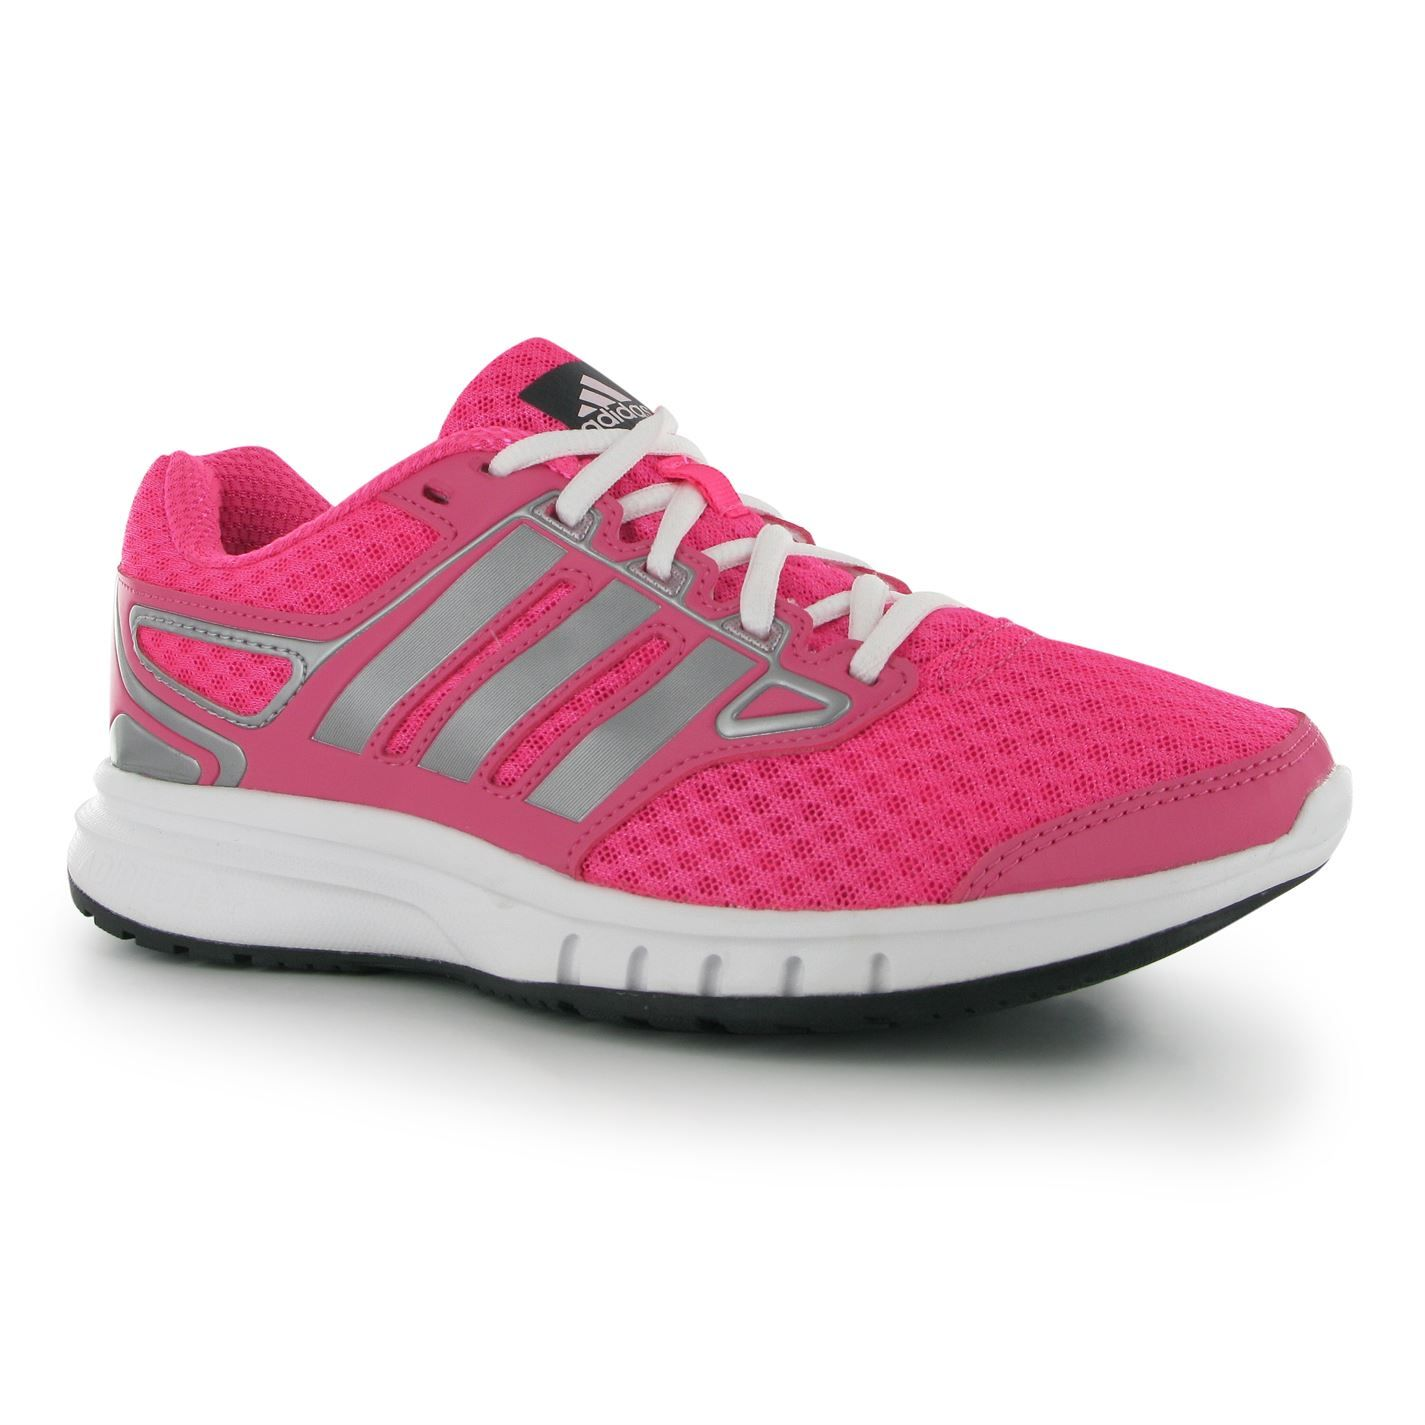 adidas | adidas Galactic Elite Ladies Running Shoes now £27.99  #sportsdirect #running #